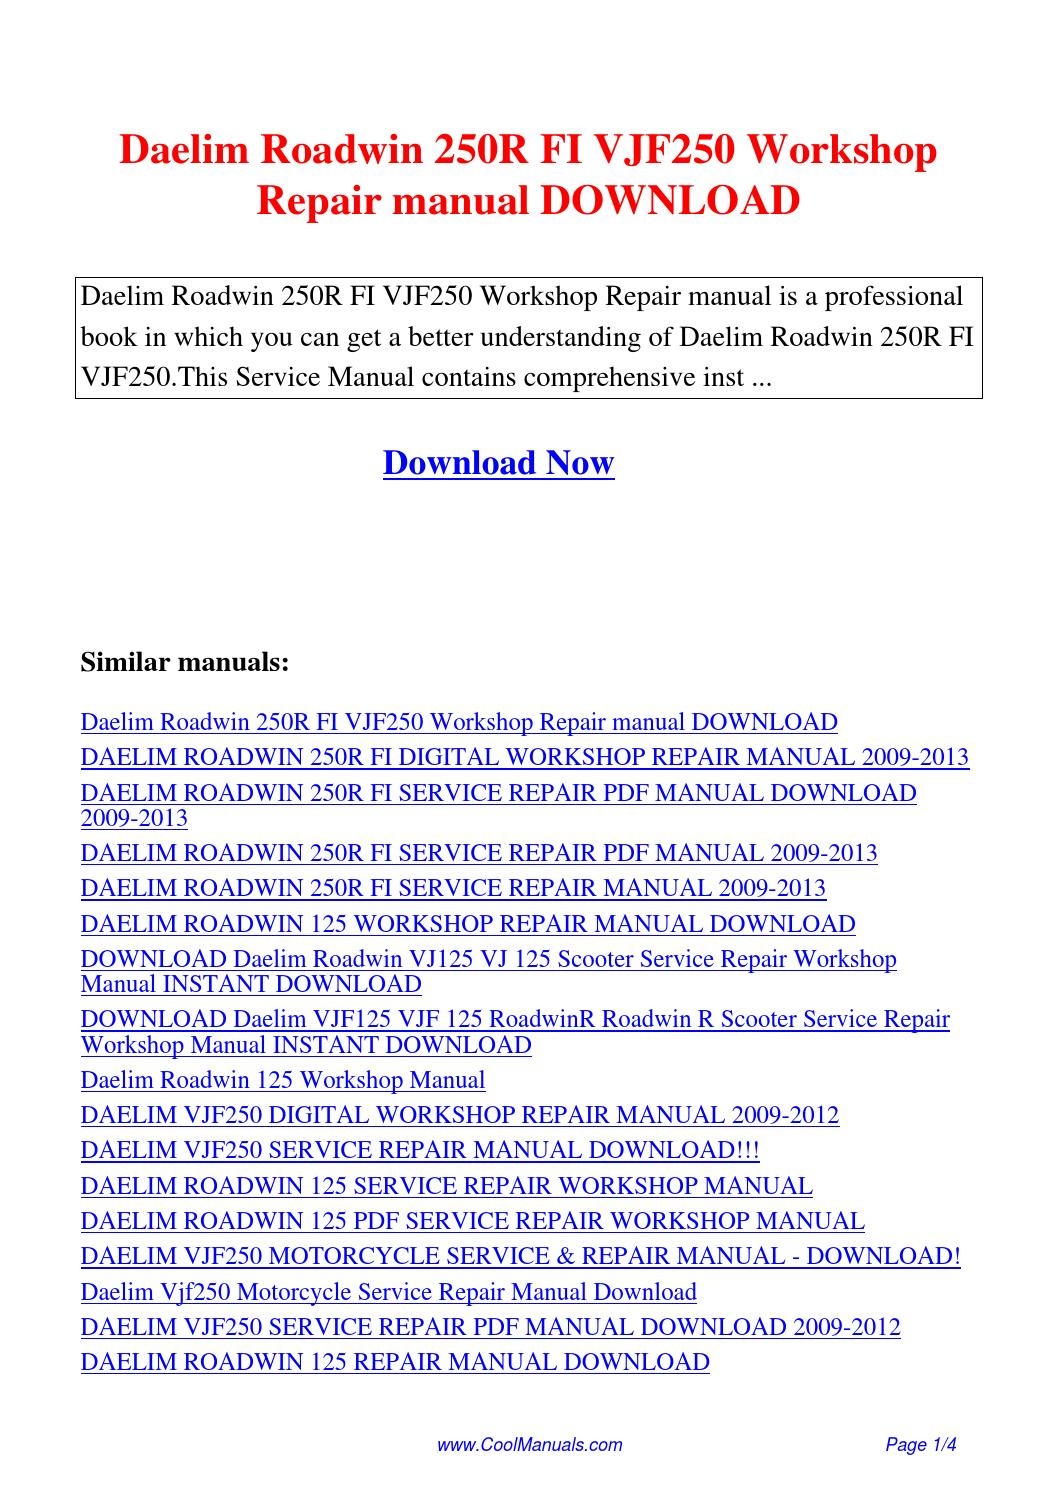 Daelim Roadwin 250R FI VJF250 Workshop Repair manual.pdf by Guang Hui -  issuu